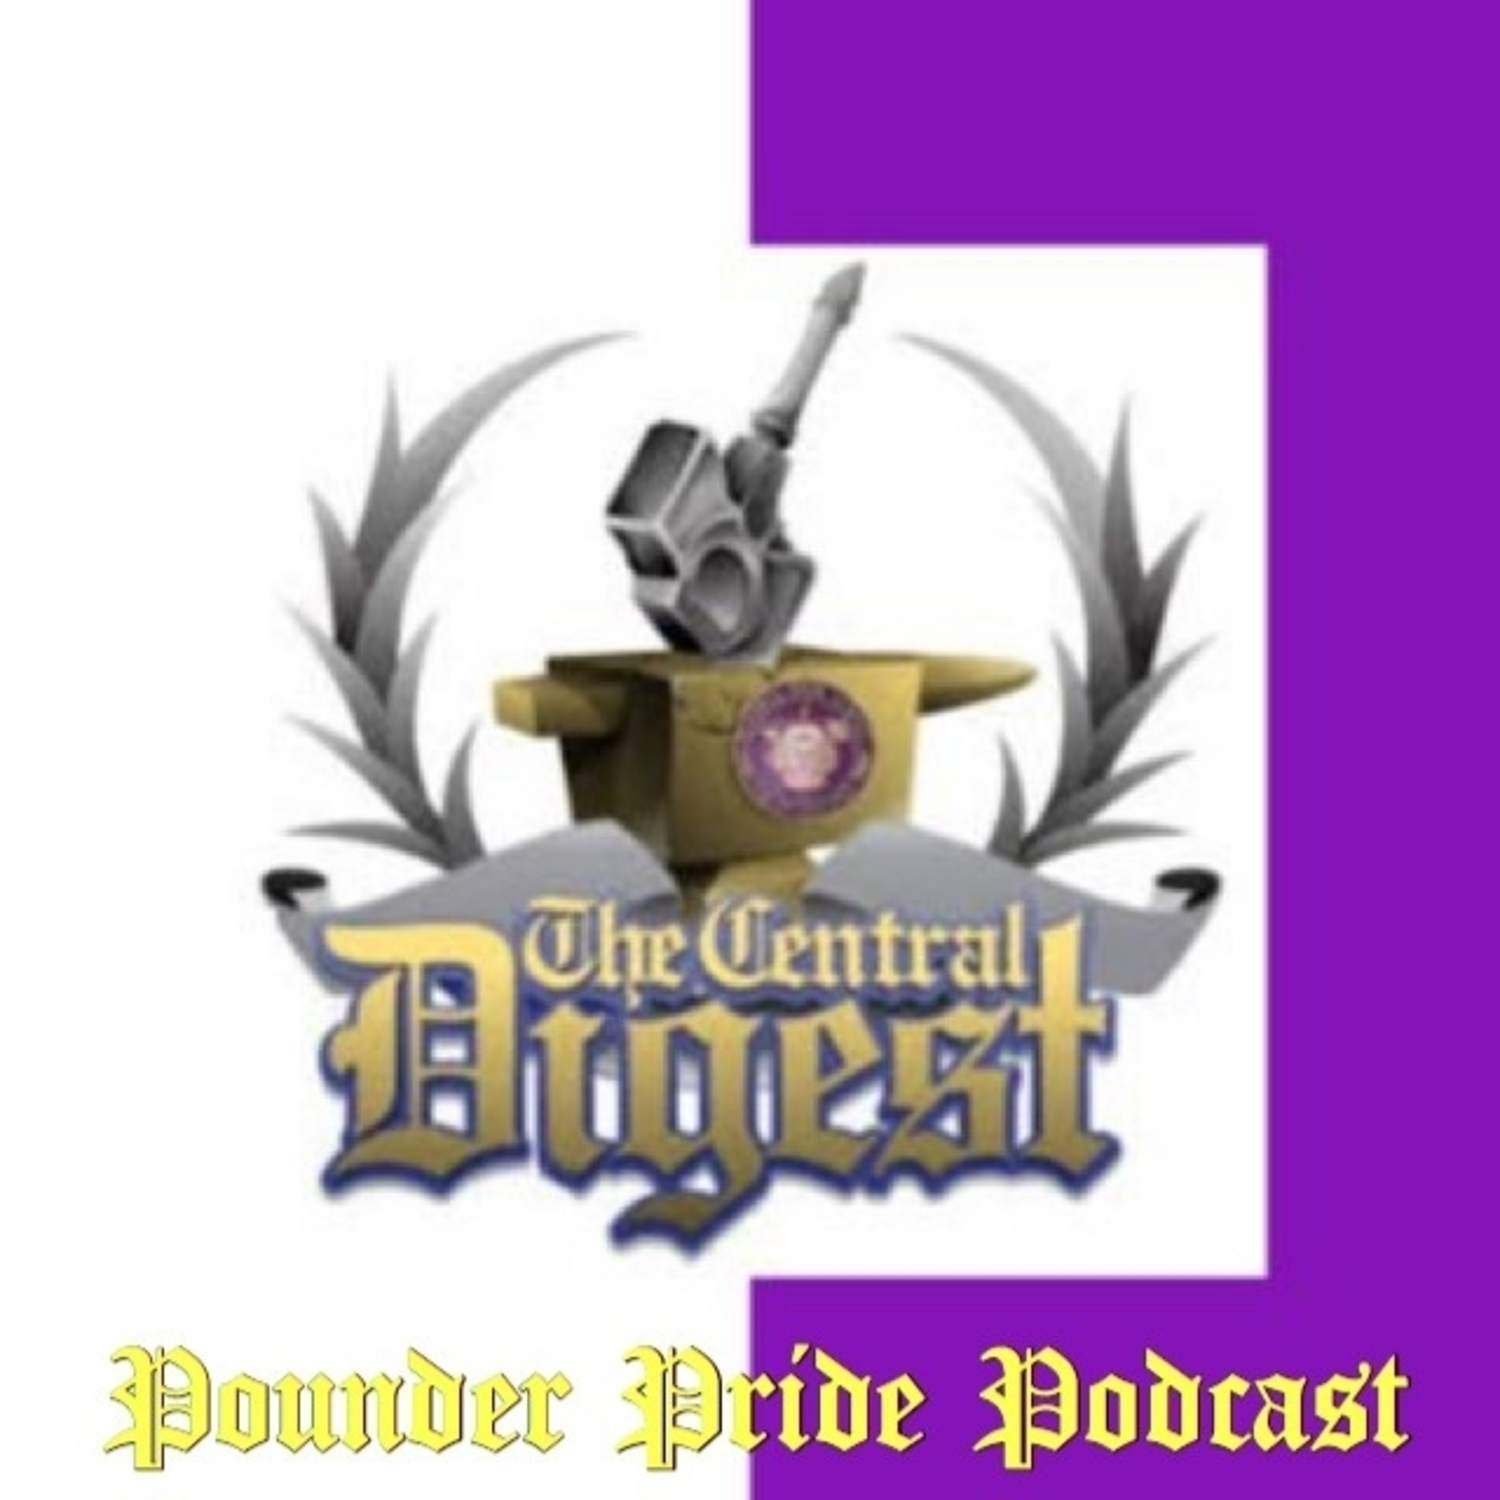 POUNDER PRIDE PODCAST -- The Pounder Pride Podcast will be a weekly podcast curated by Copy Editor Jake Johns and members of the Central Digest staff along with special guests.